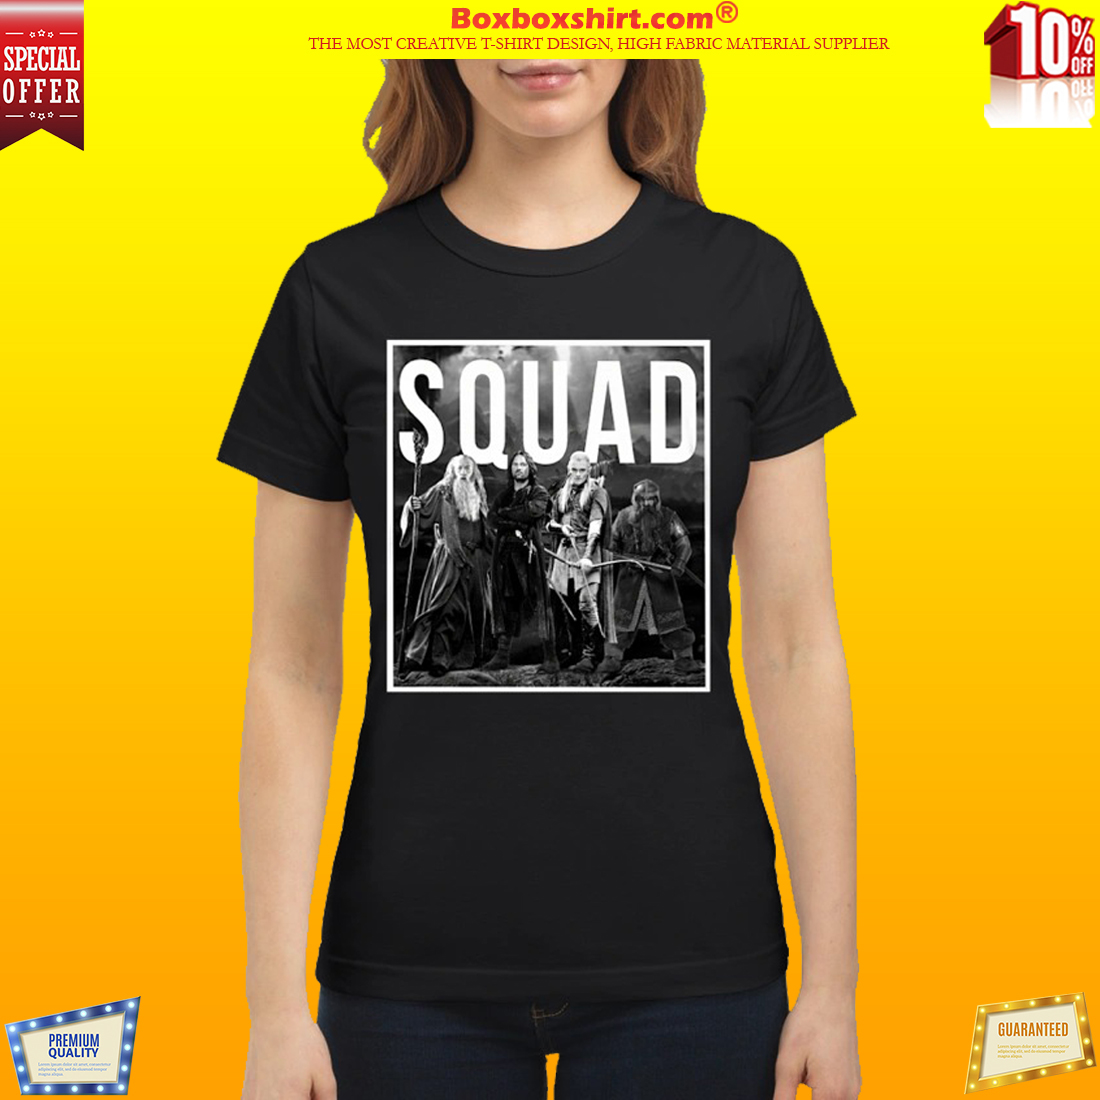 The Lord of the rings squad shirt